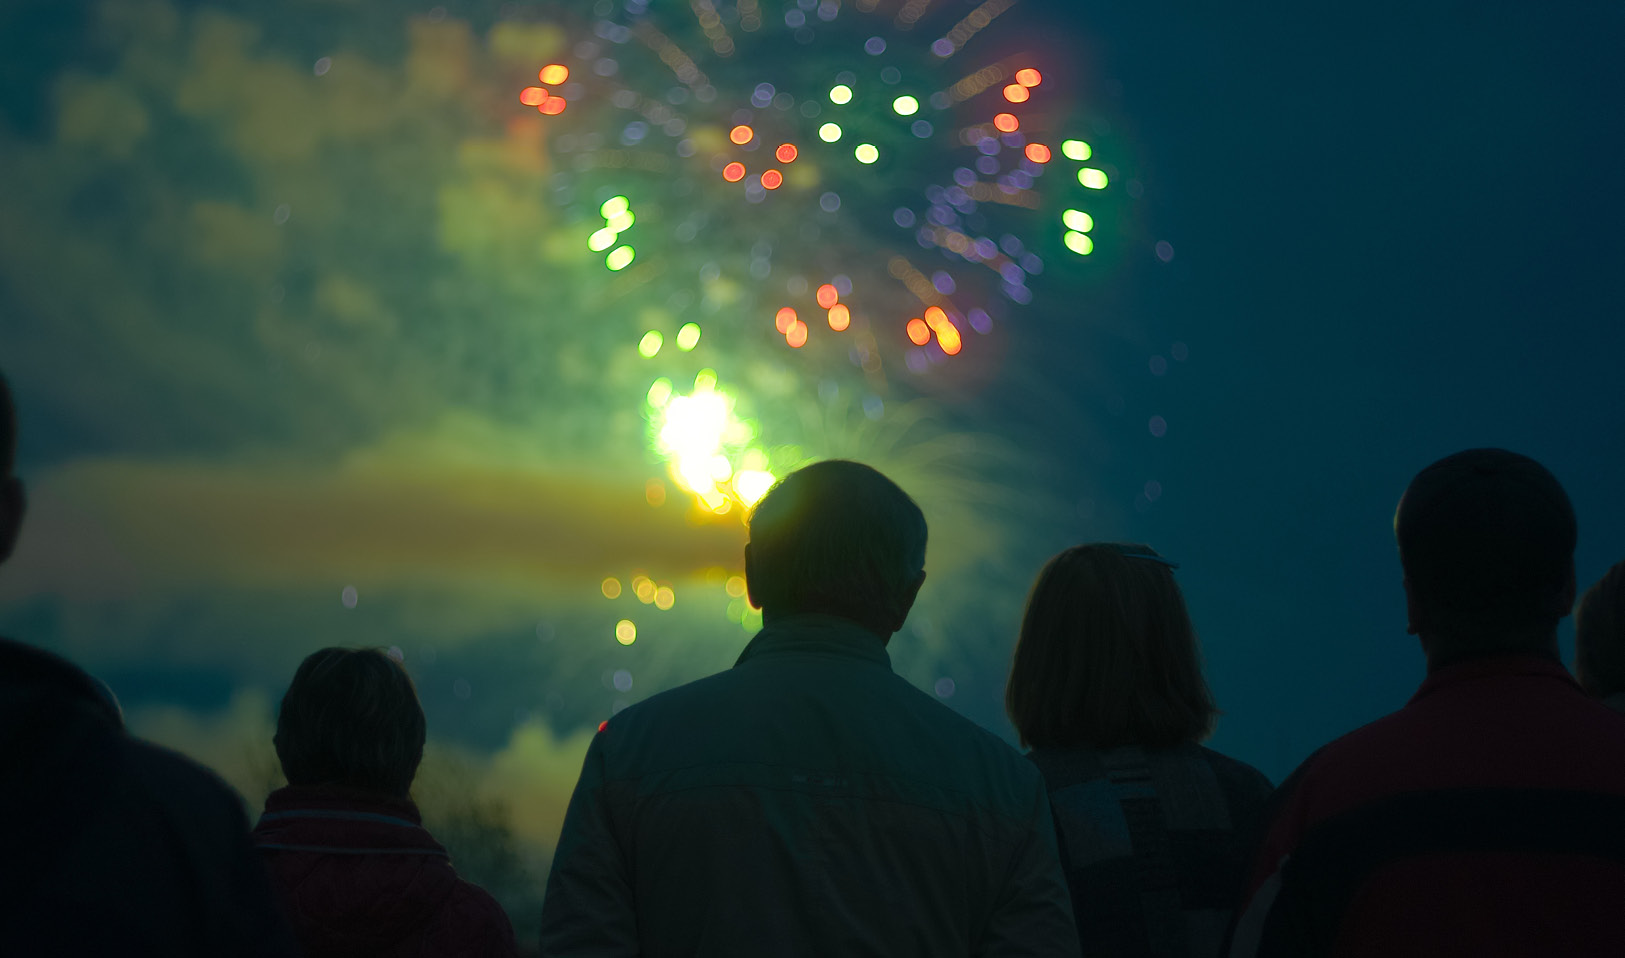 Fireworks night at the Wellcome Genome Campus open to the public October events, local community